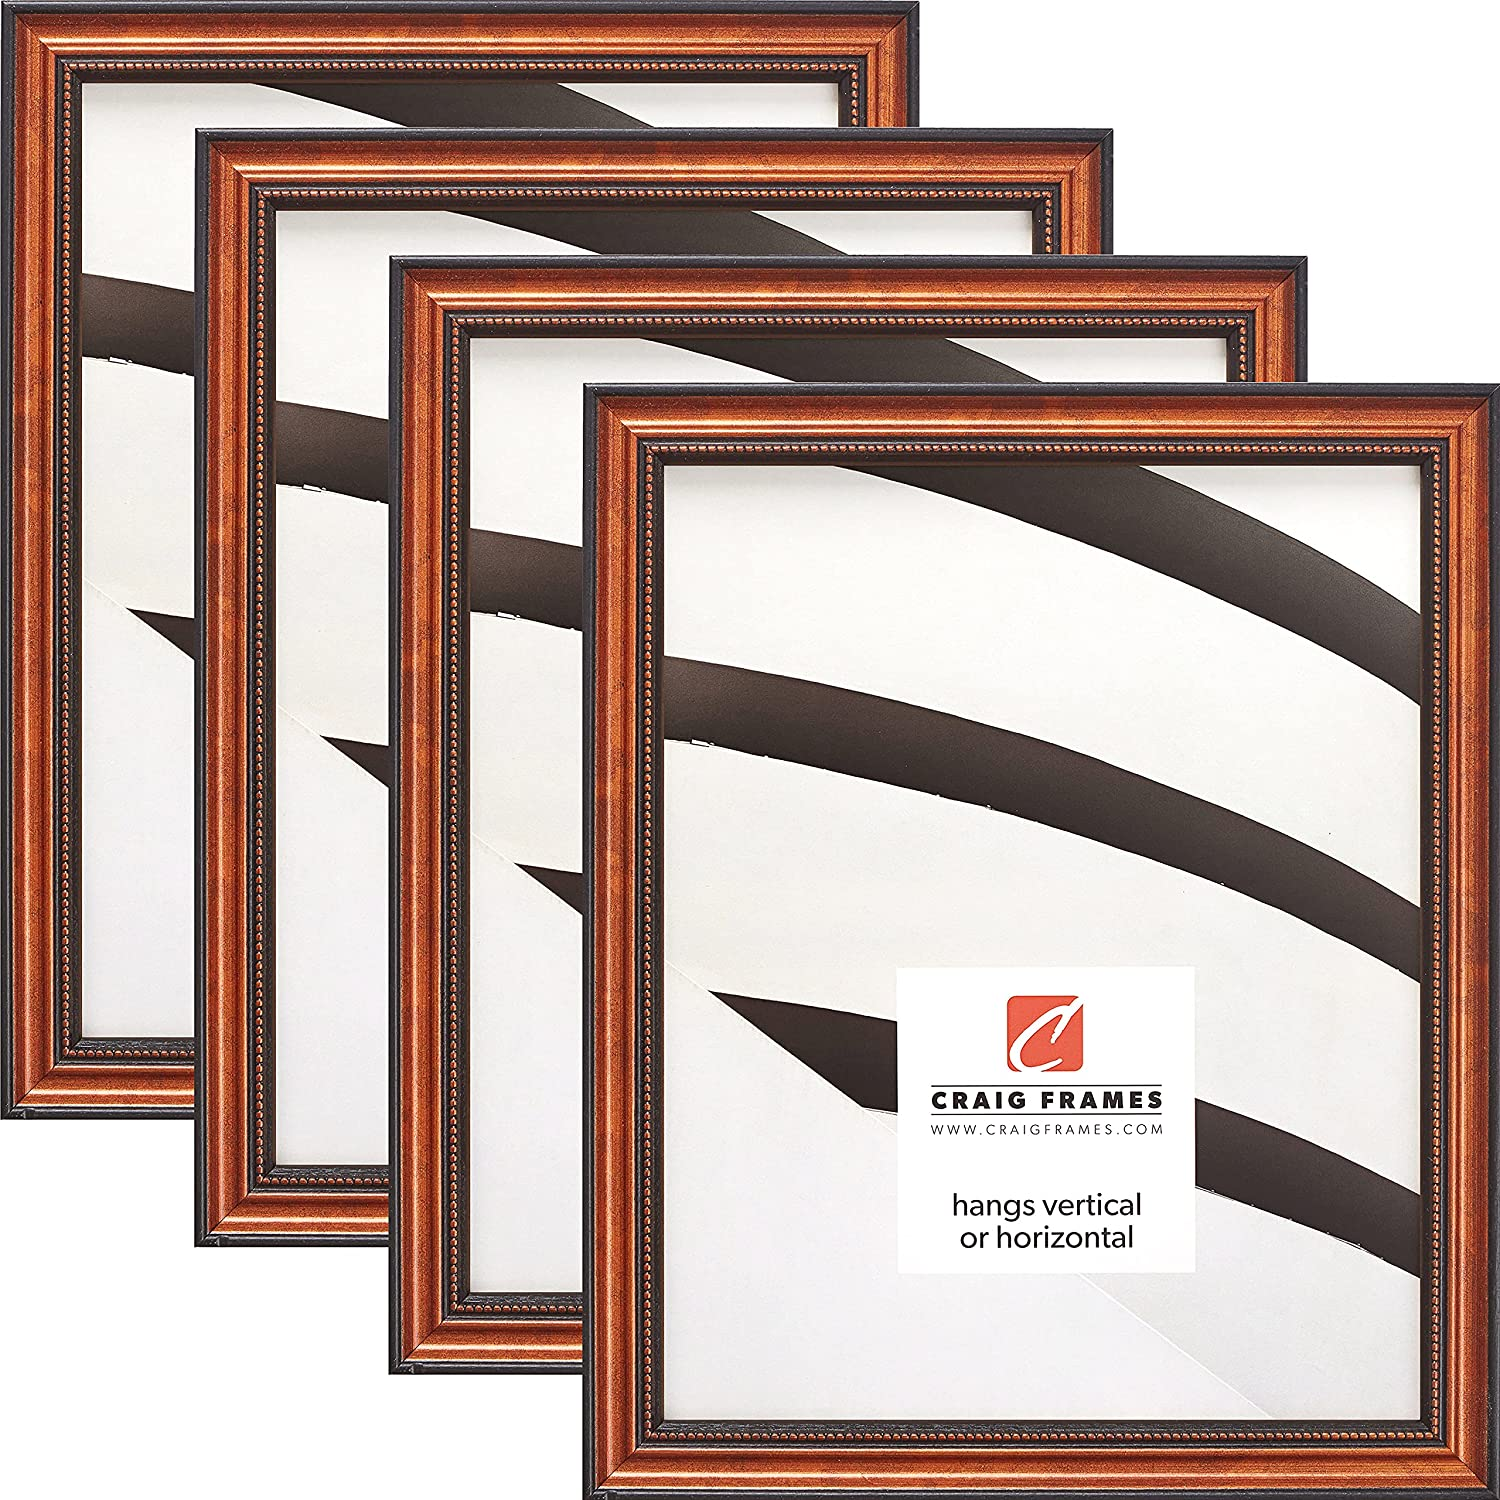 Craig Frames 314CU Ornate Copper Picture x S Max 40% OFF Frame Omaha Mall Inch 10 12